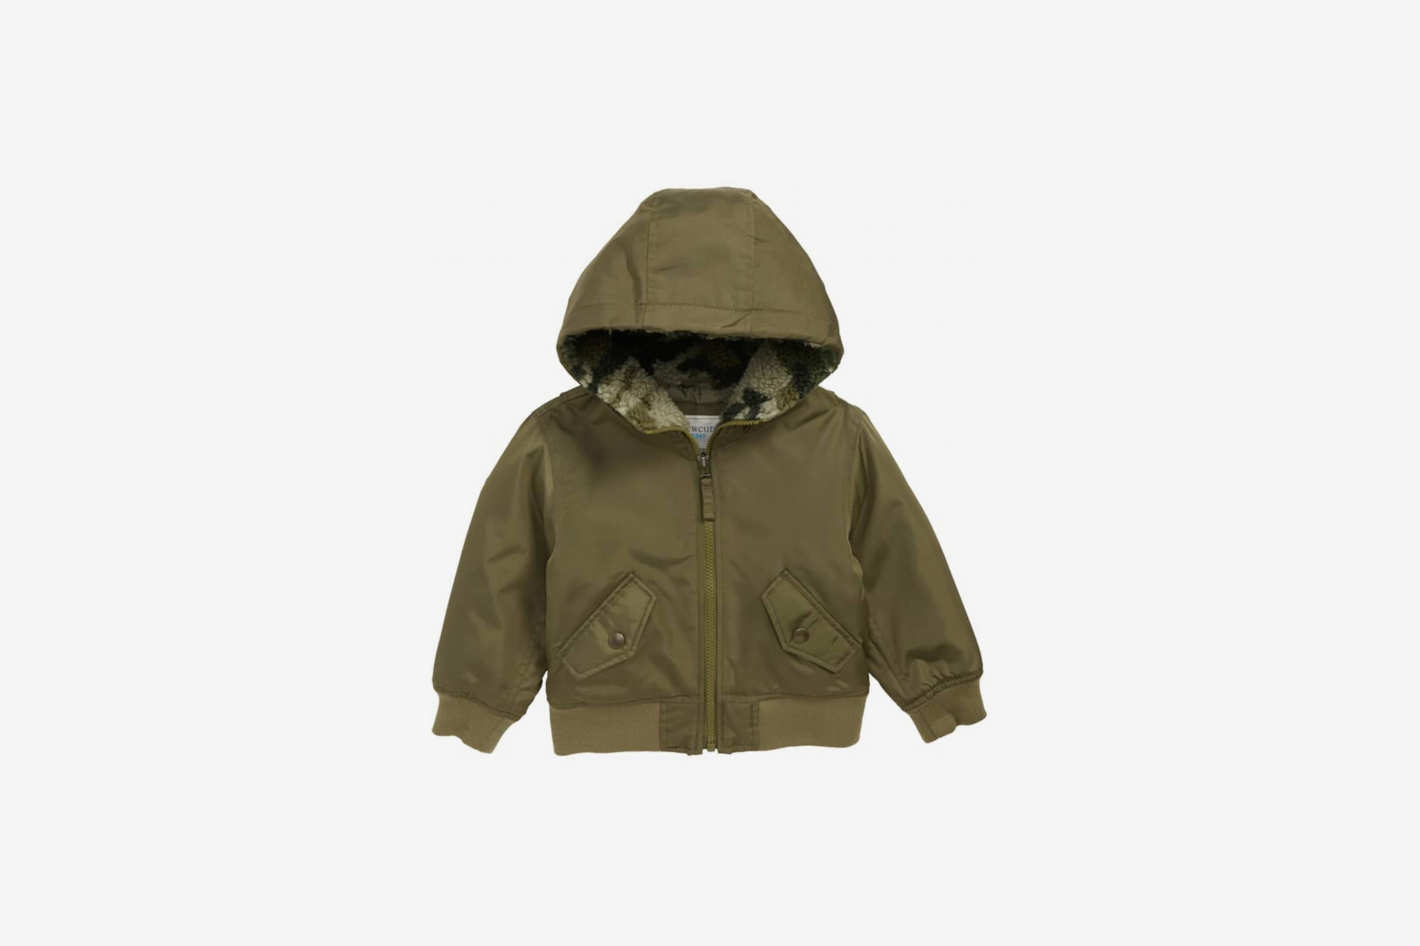 Crewcuts by J.Crew Hooded Bomber Jacket